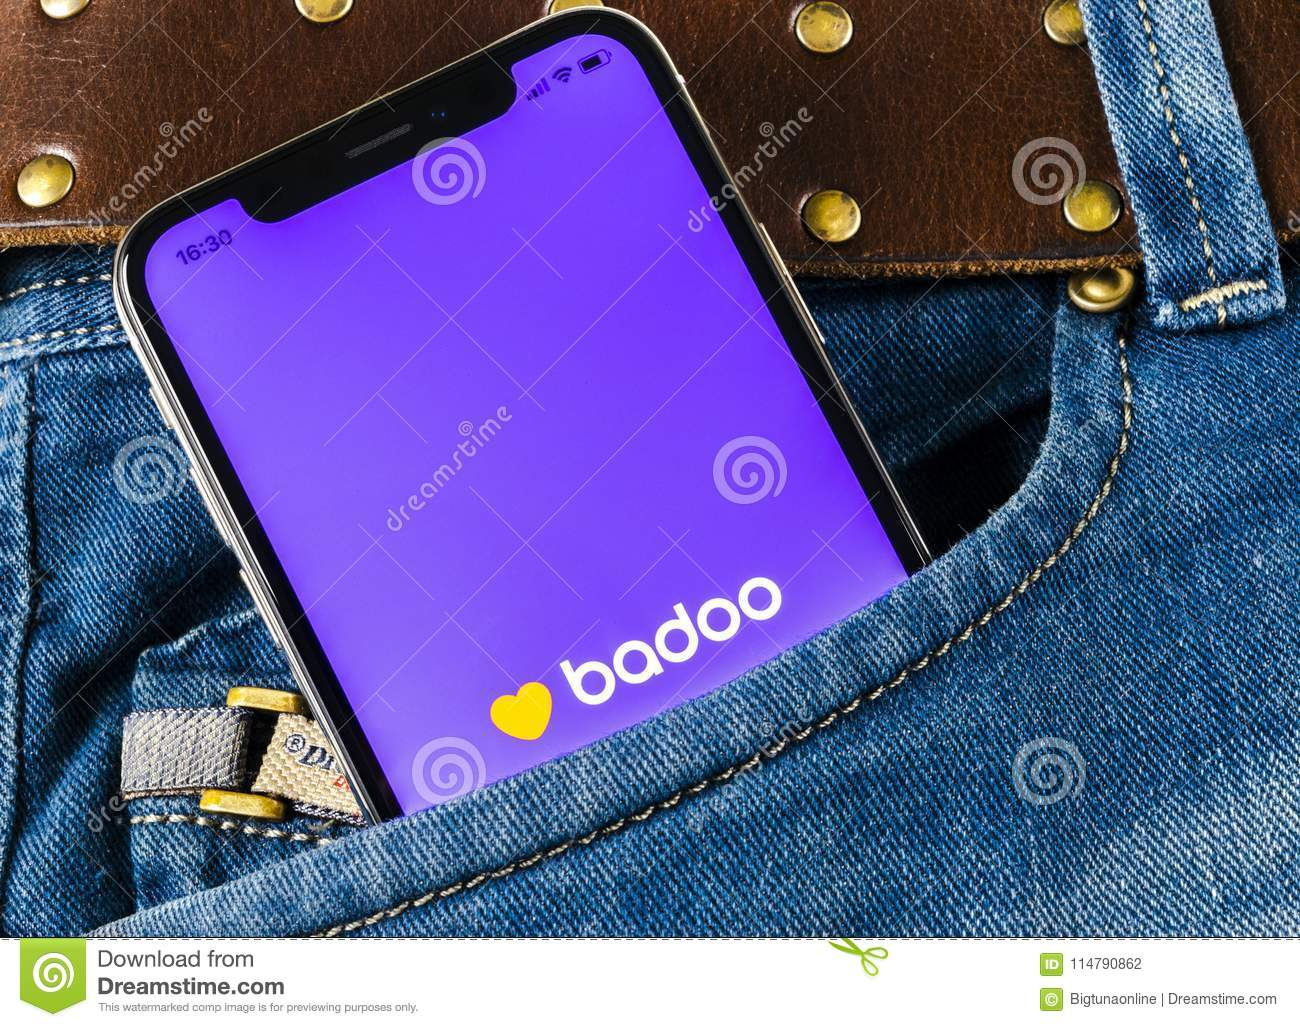 Badoo Application Icon On Apple IPhone X Screen Close-up In